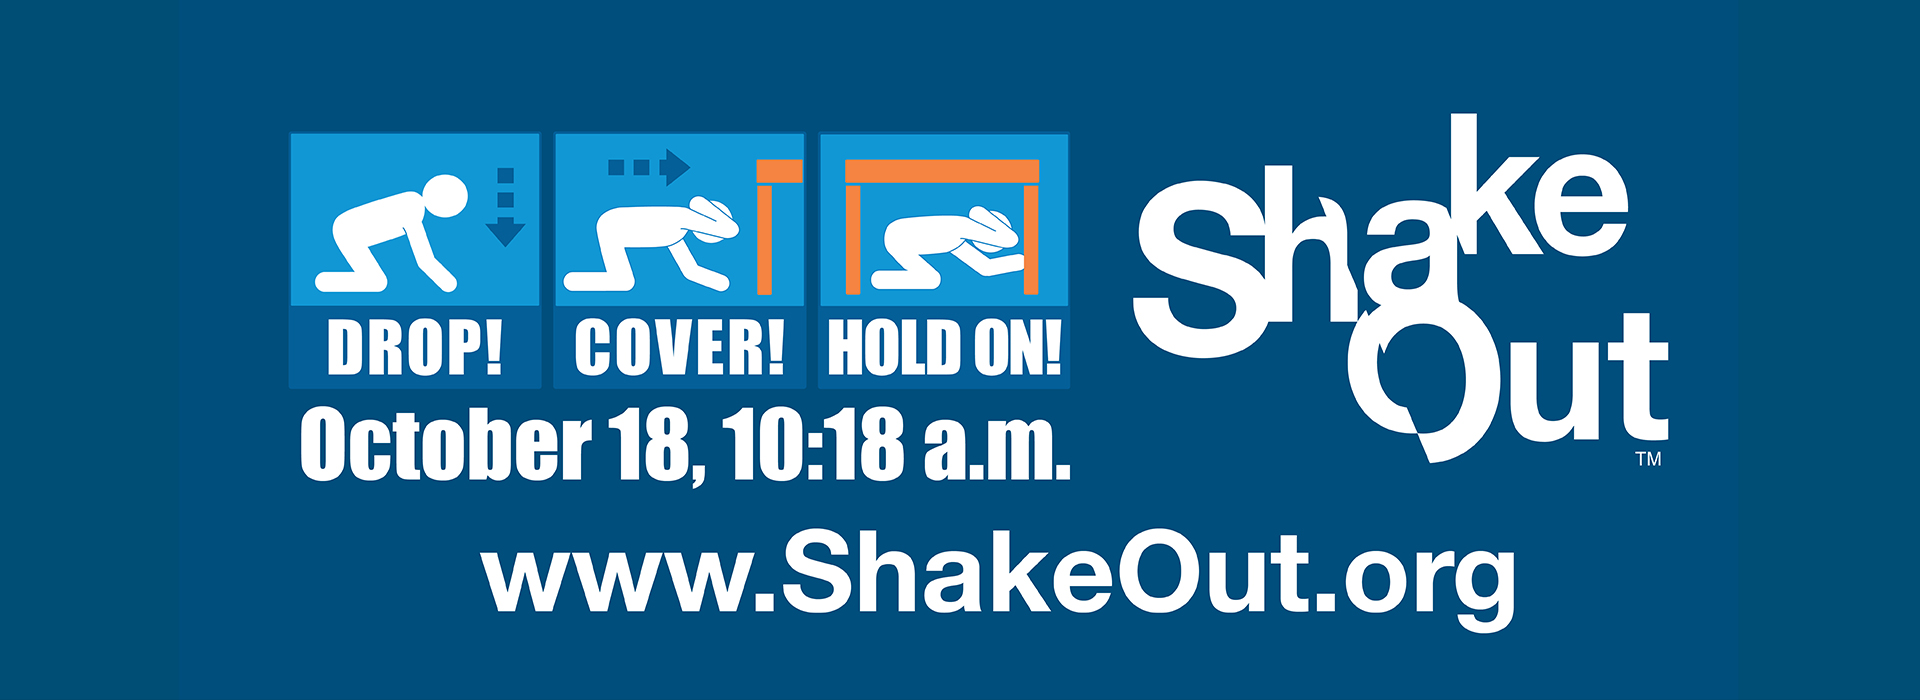 CSUSB to participate in Great ShakeOut earthquake drill set for Oct. 18